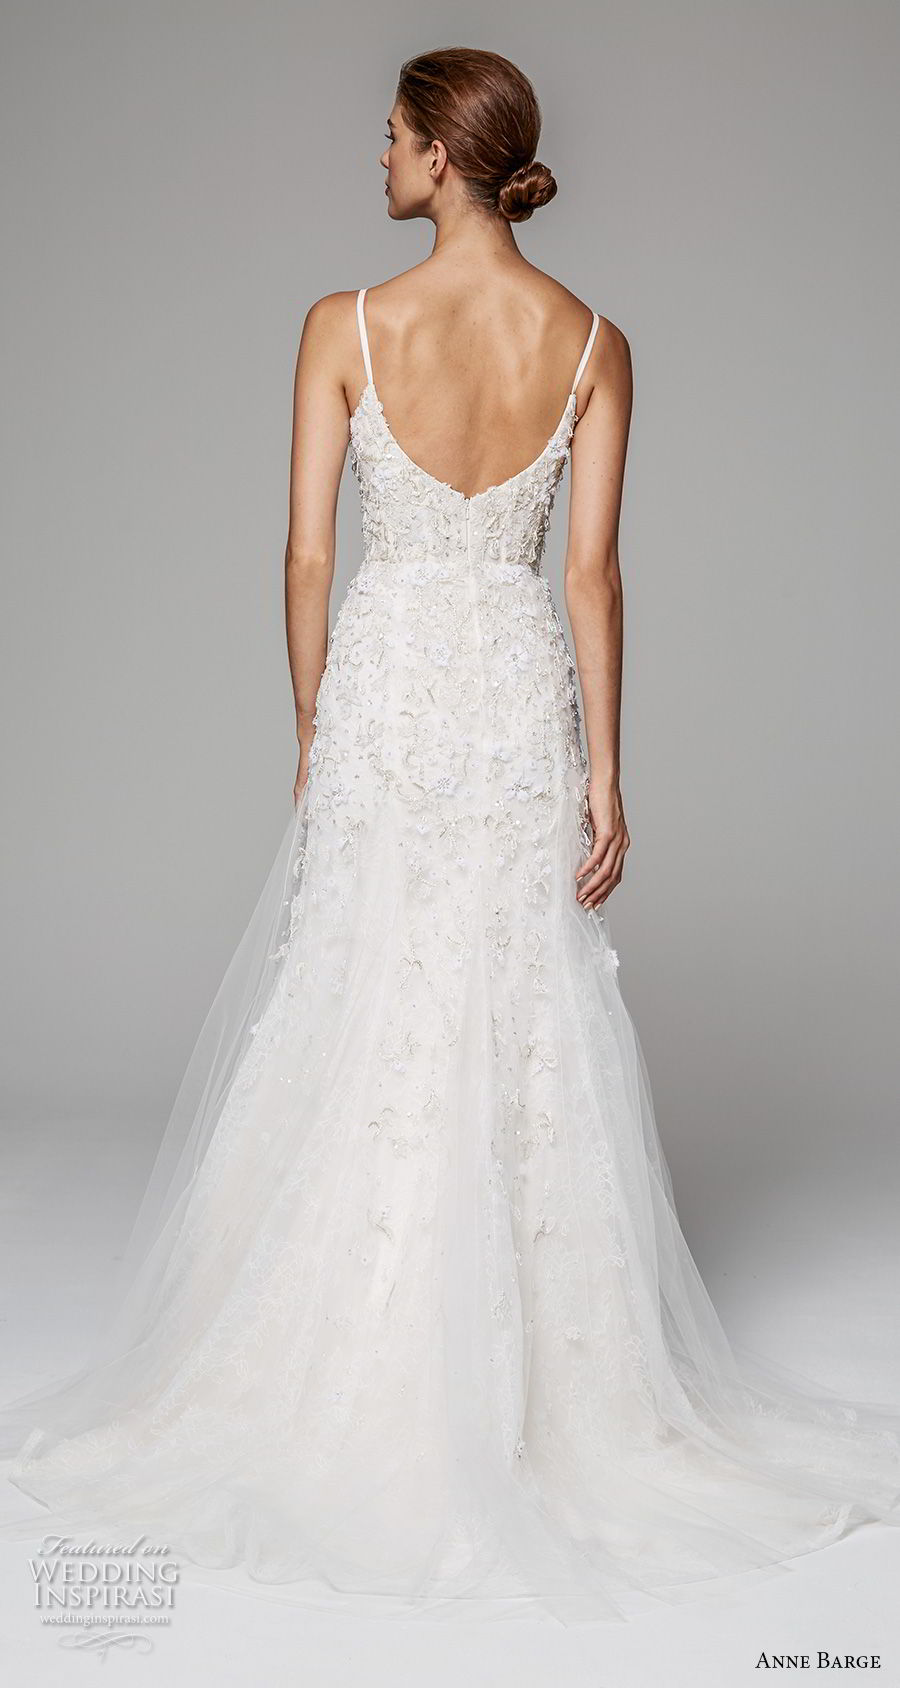 anne barge fall 2018 bridal sleeveless spaghetti strap sweetheart neckline heavily embeliished bodice romantic a line wedding dress open scoop back sweep train (9) bv